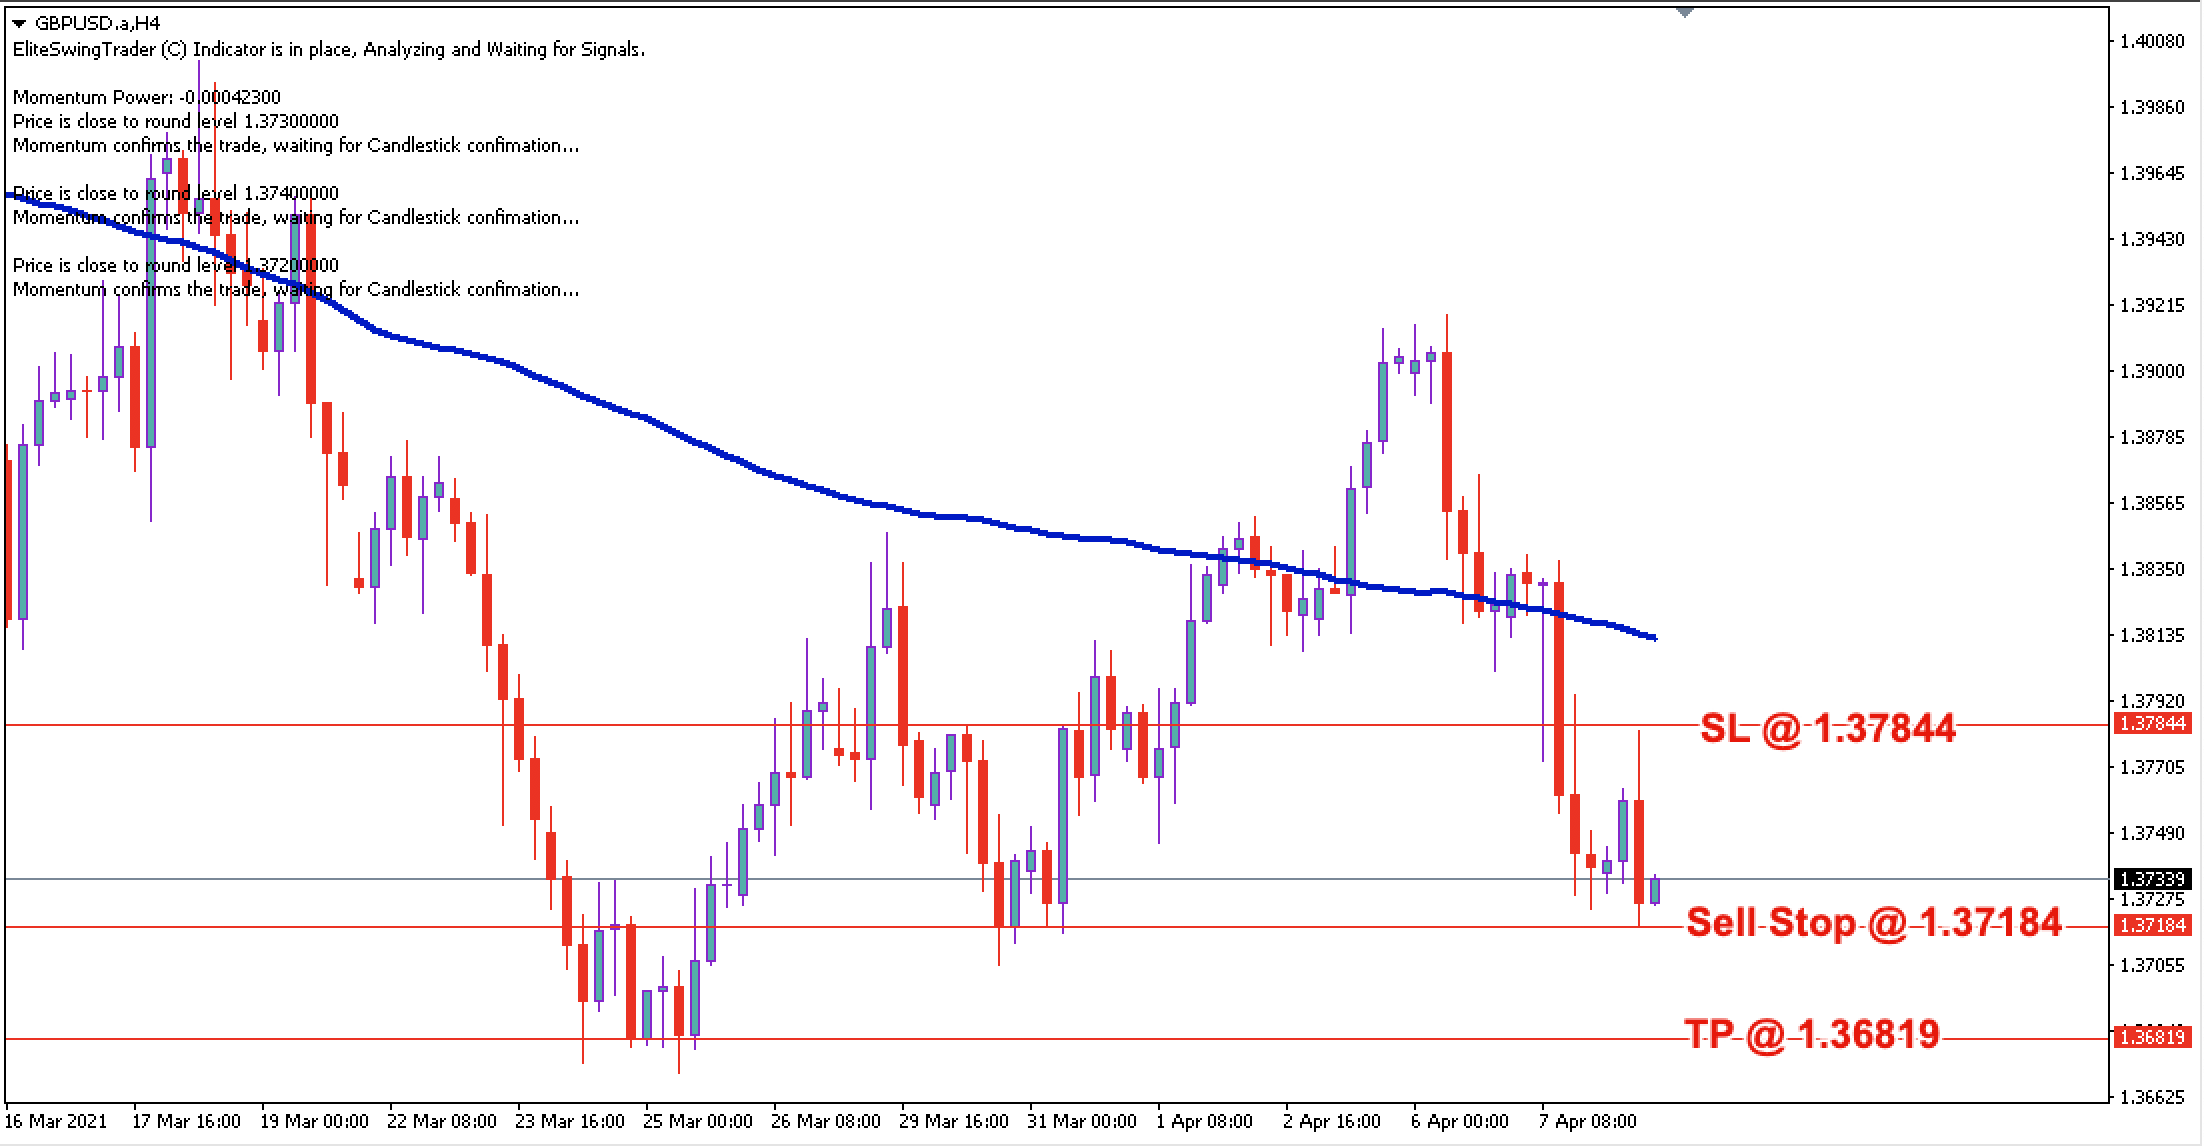 GBP/USD Daily Price Forecast - 8th April 2021